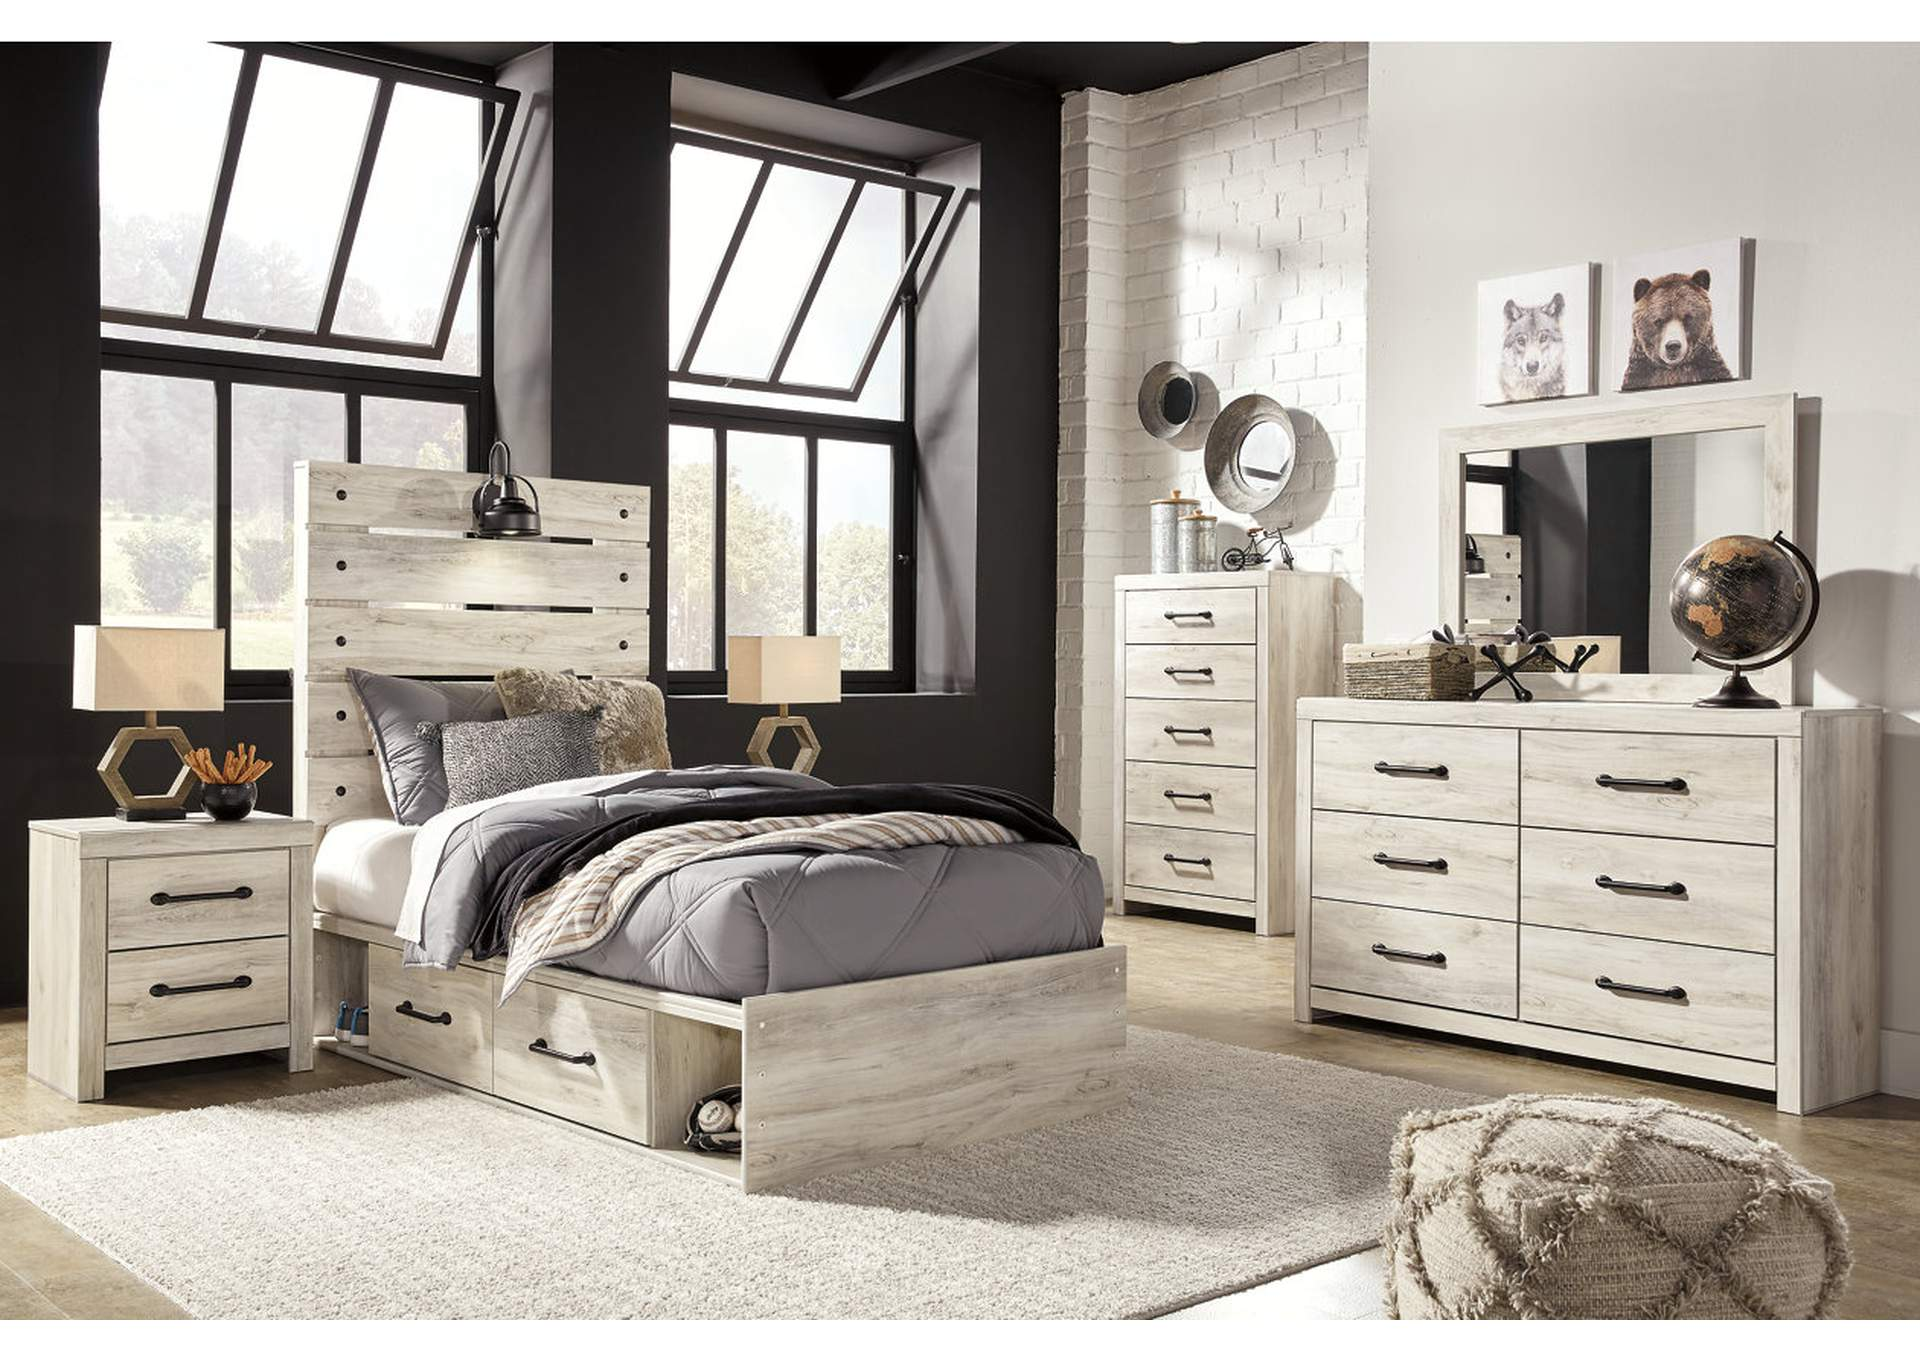 Cambeck Twin Panel Bed with 2 Storage Drawers,Signature Design By Ashley